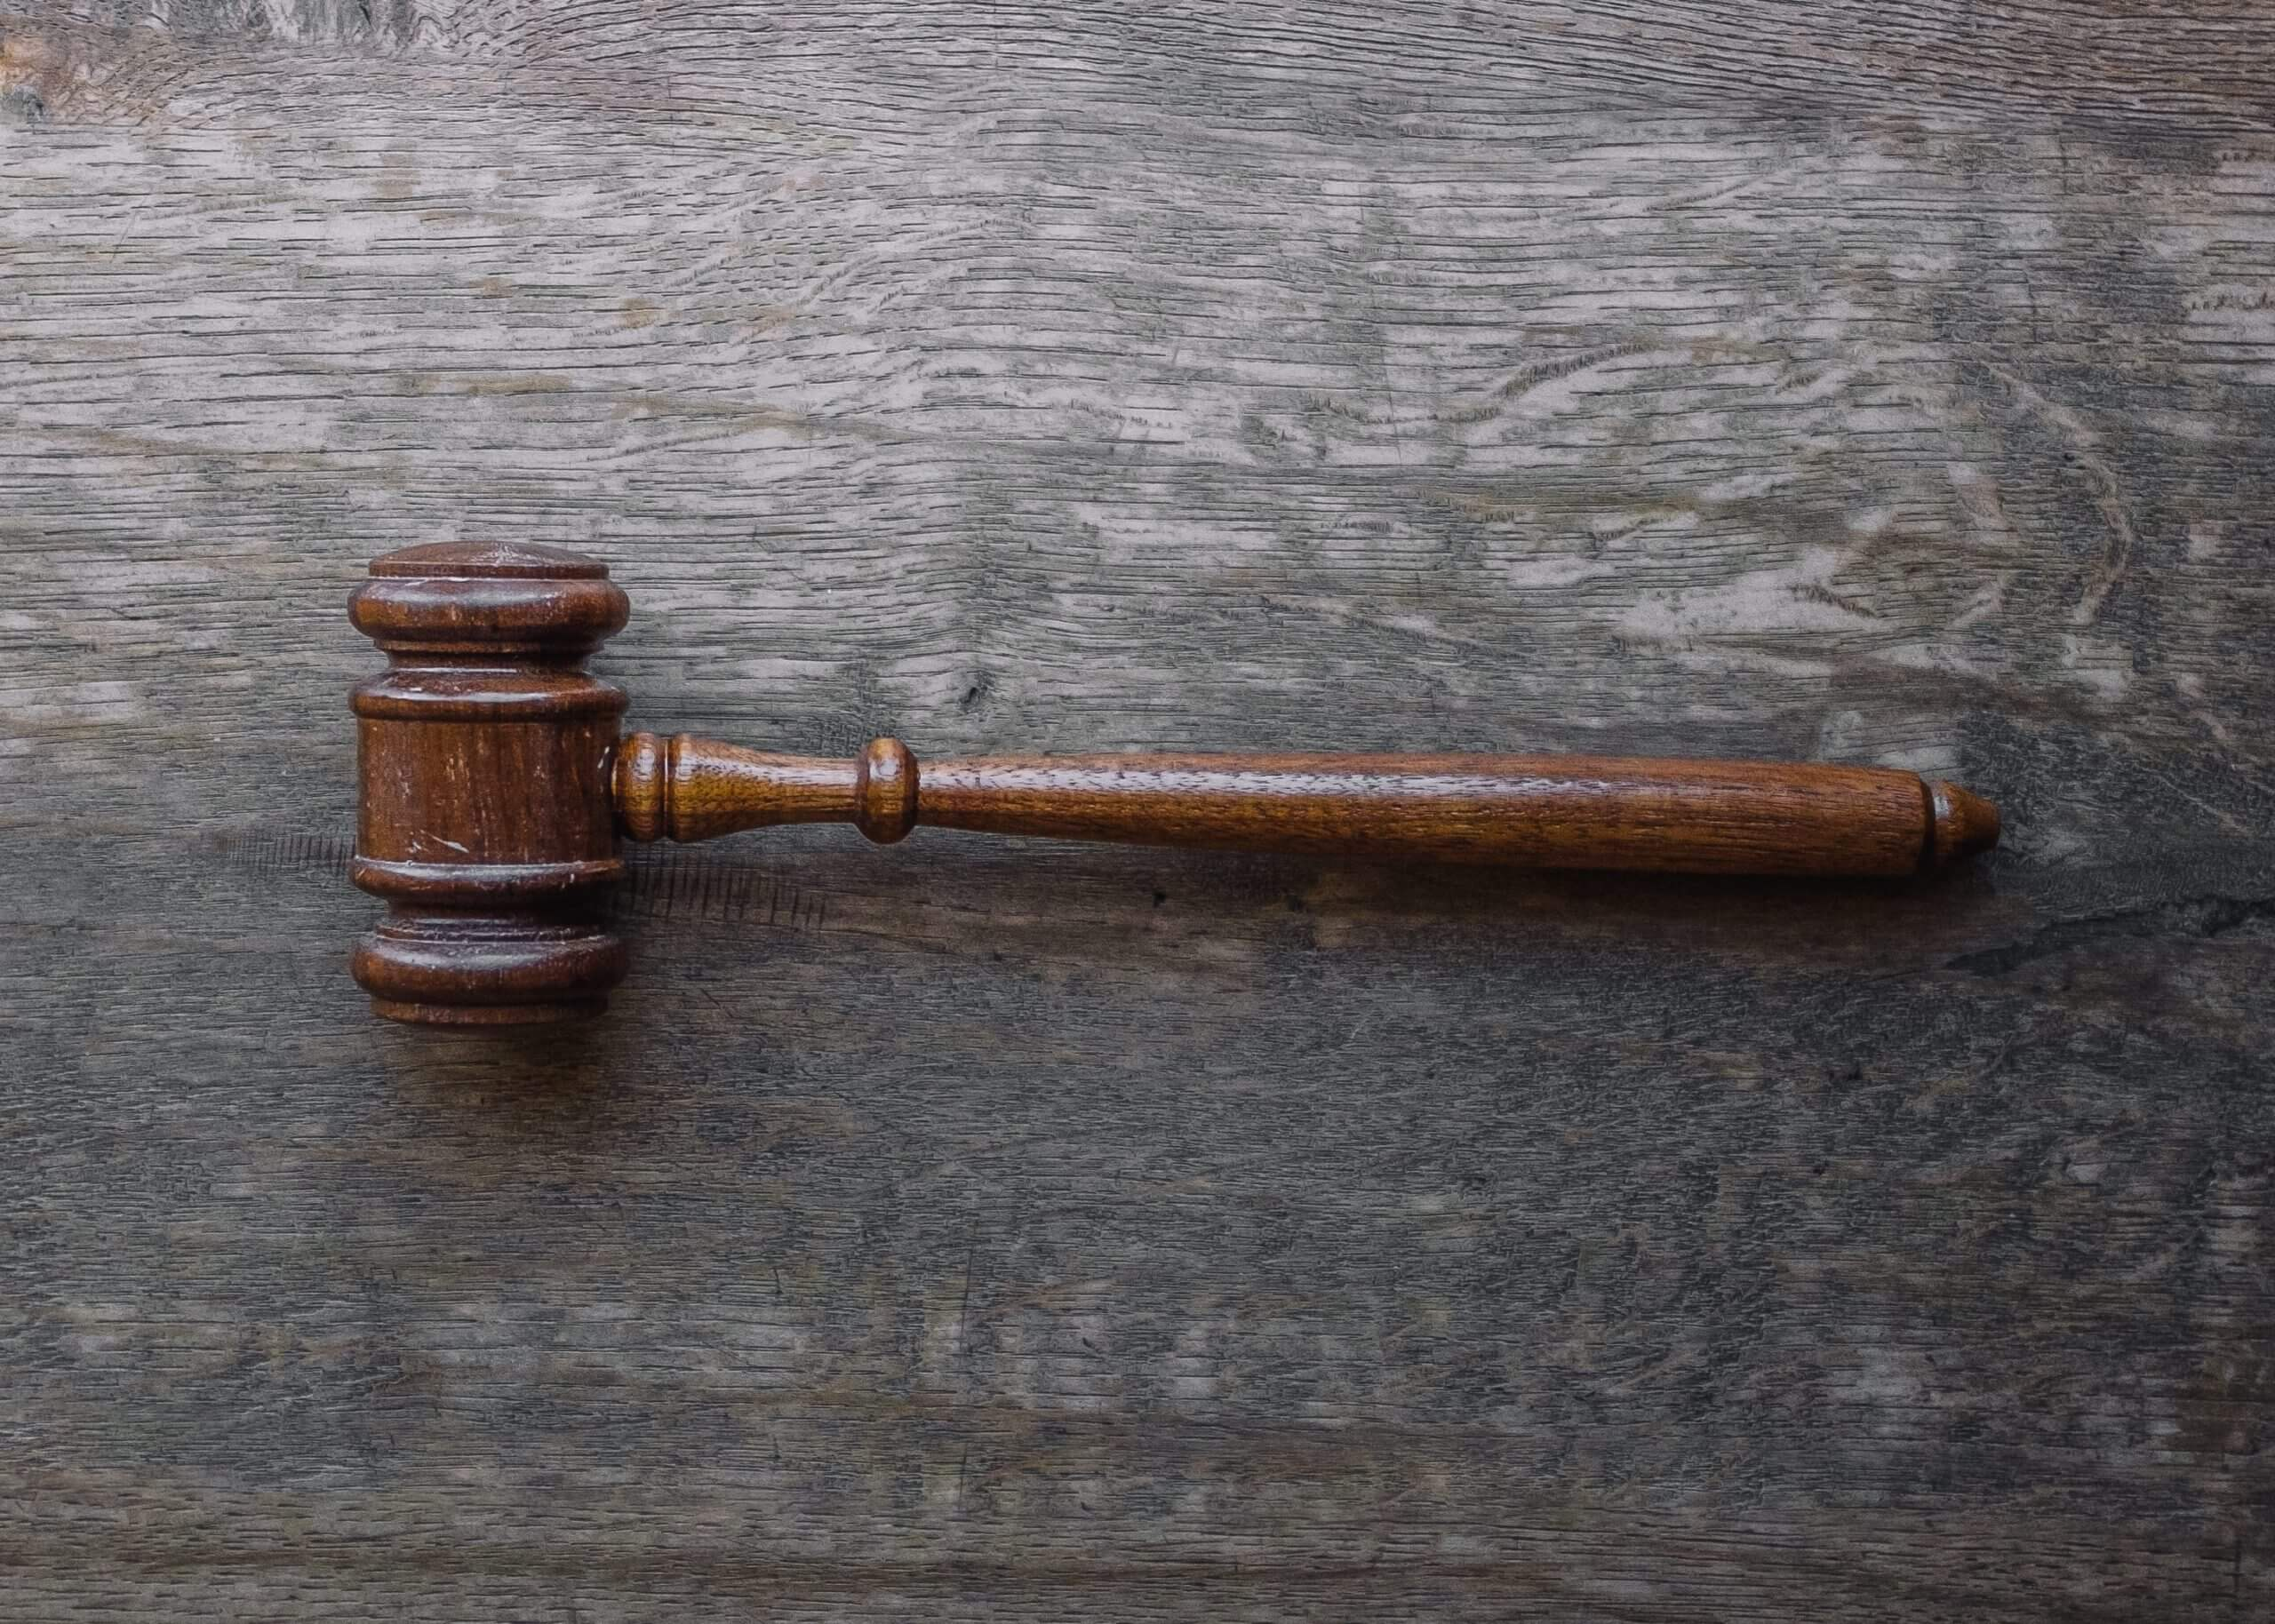 An old wooden gavel lying atop a wooden desk.